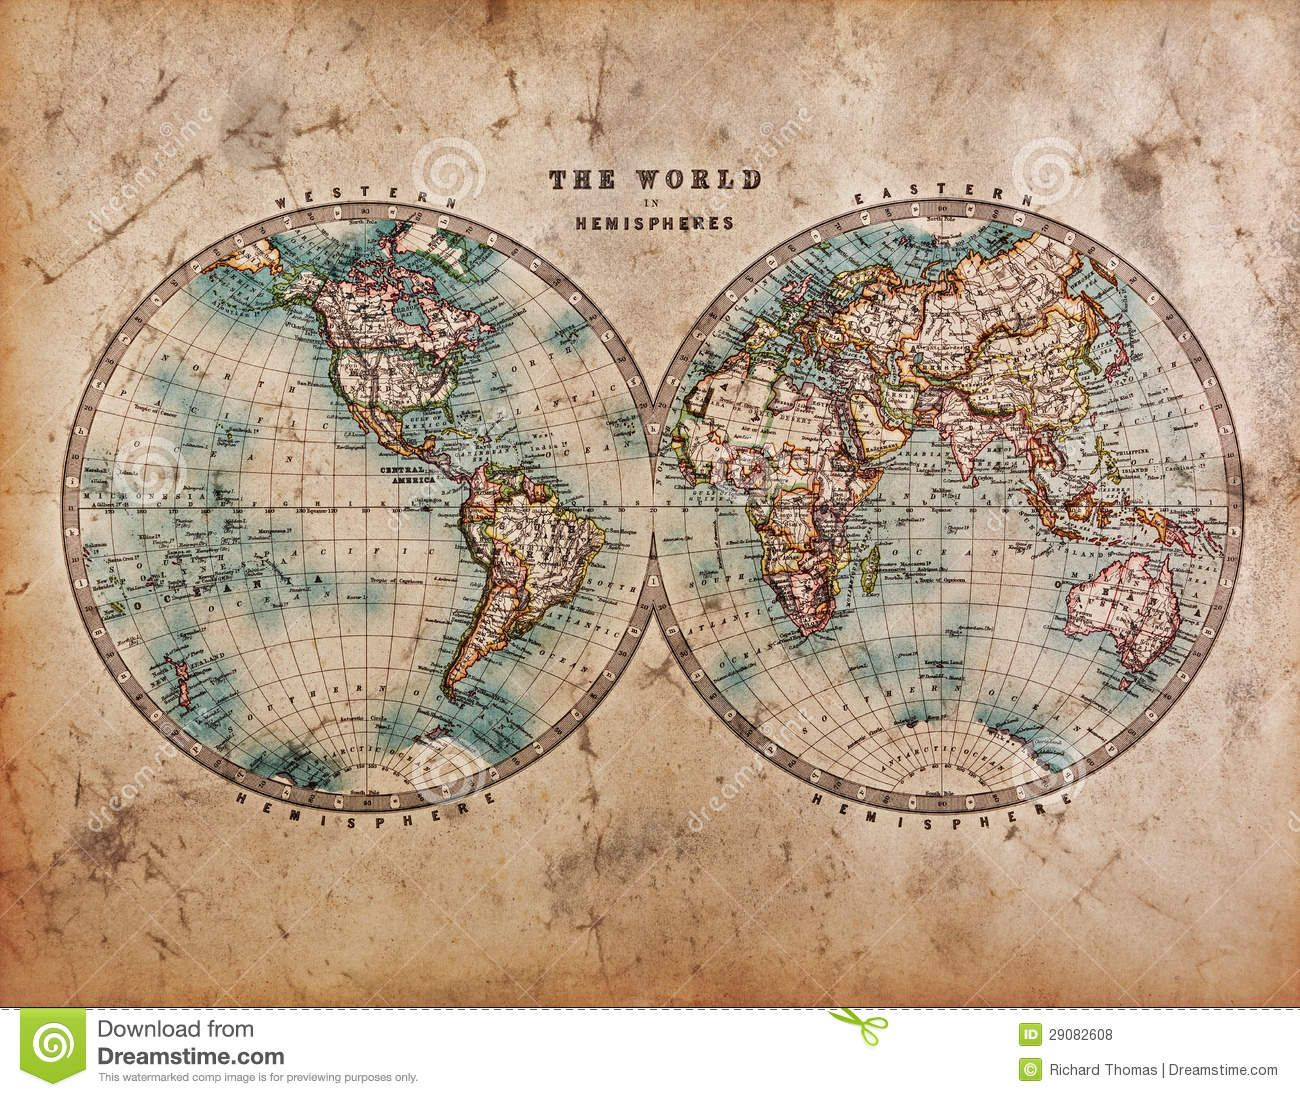 Old world map in hemispheres royalty free stock photos image old world map in hemispheres royalty free stock photos image 29082608 gumiabroncs Image collections